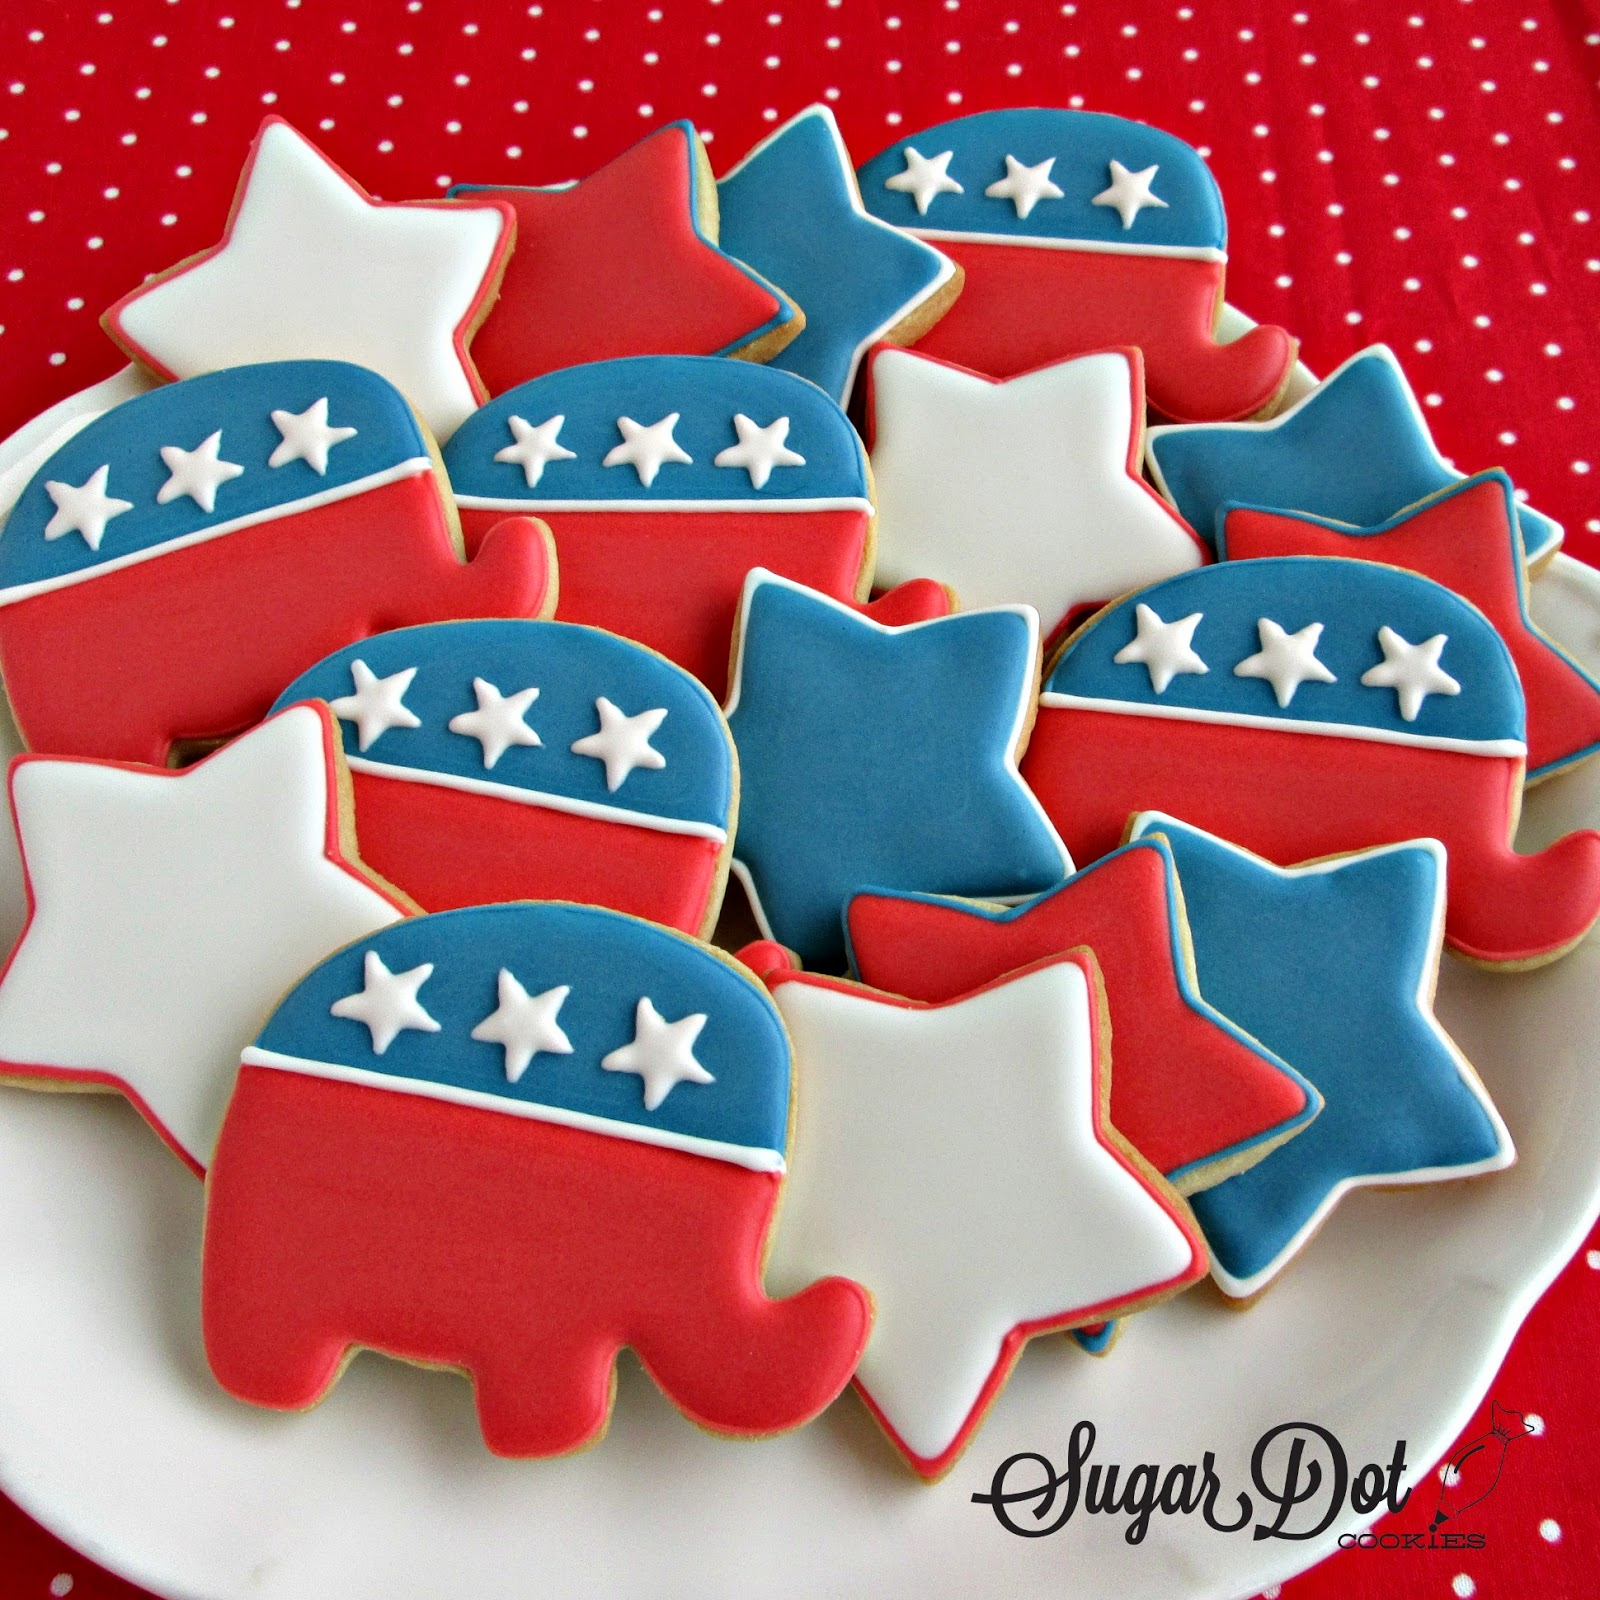 These cookies were sent to Washington, DC for the swearing ...